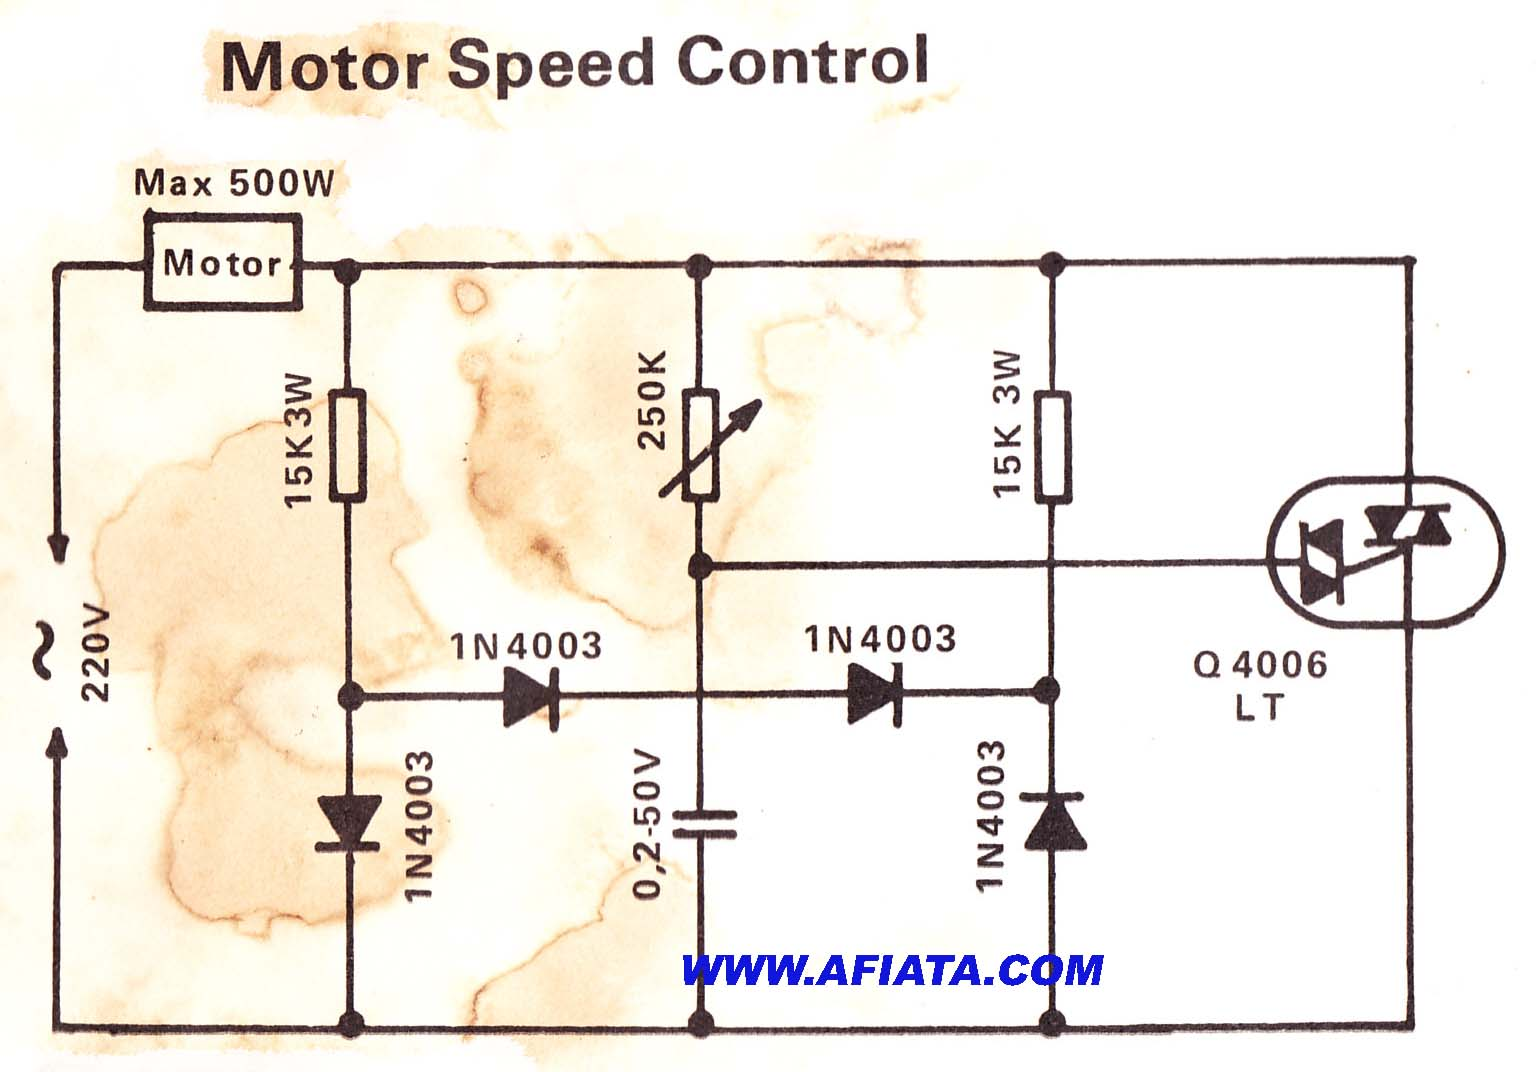 Control of the motor speeds